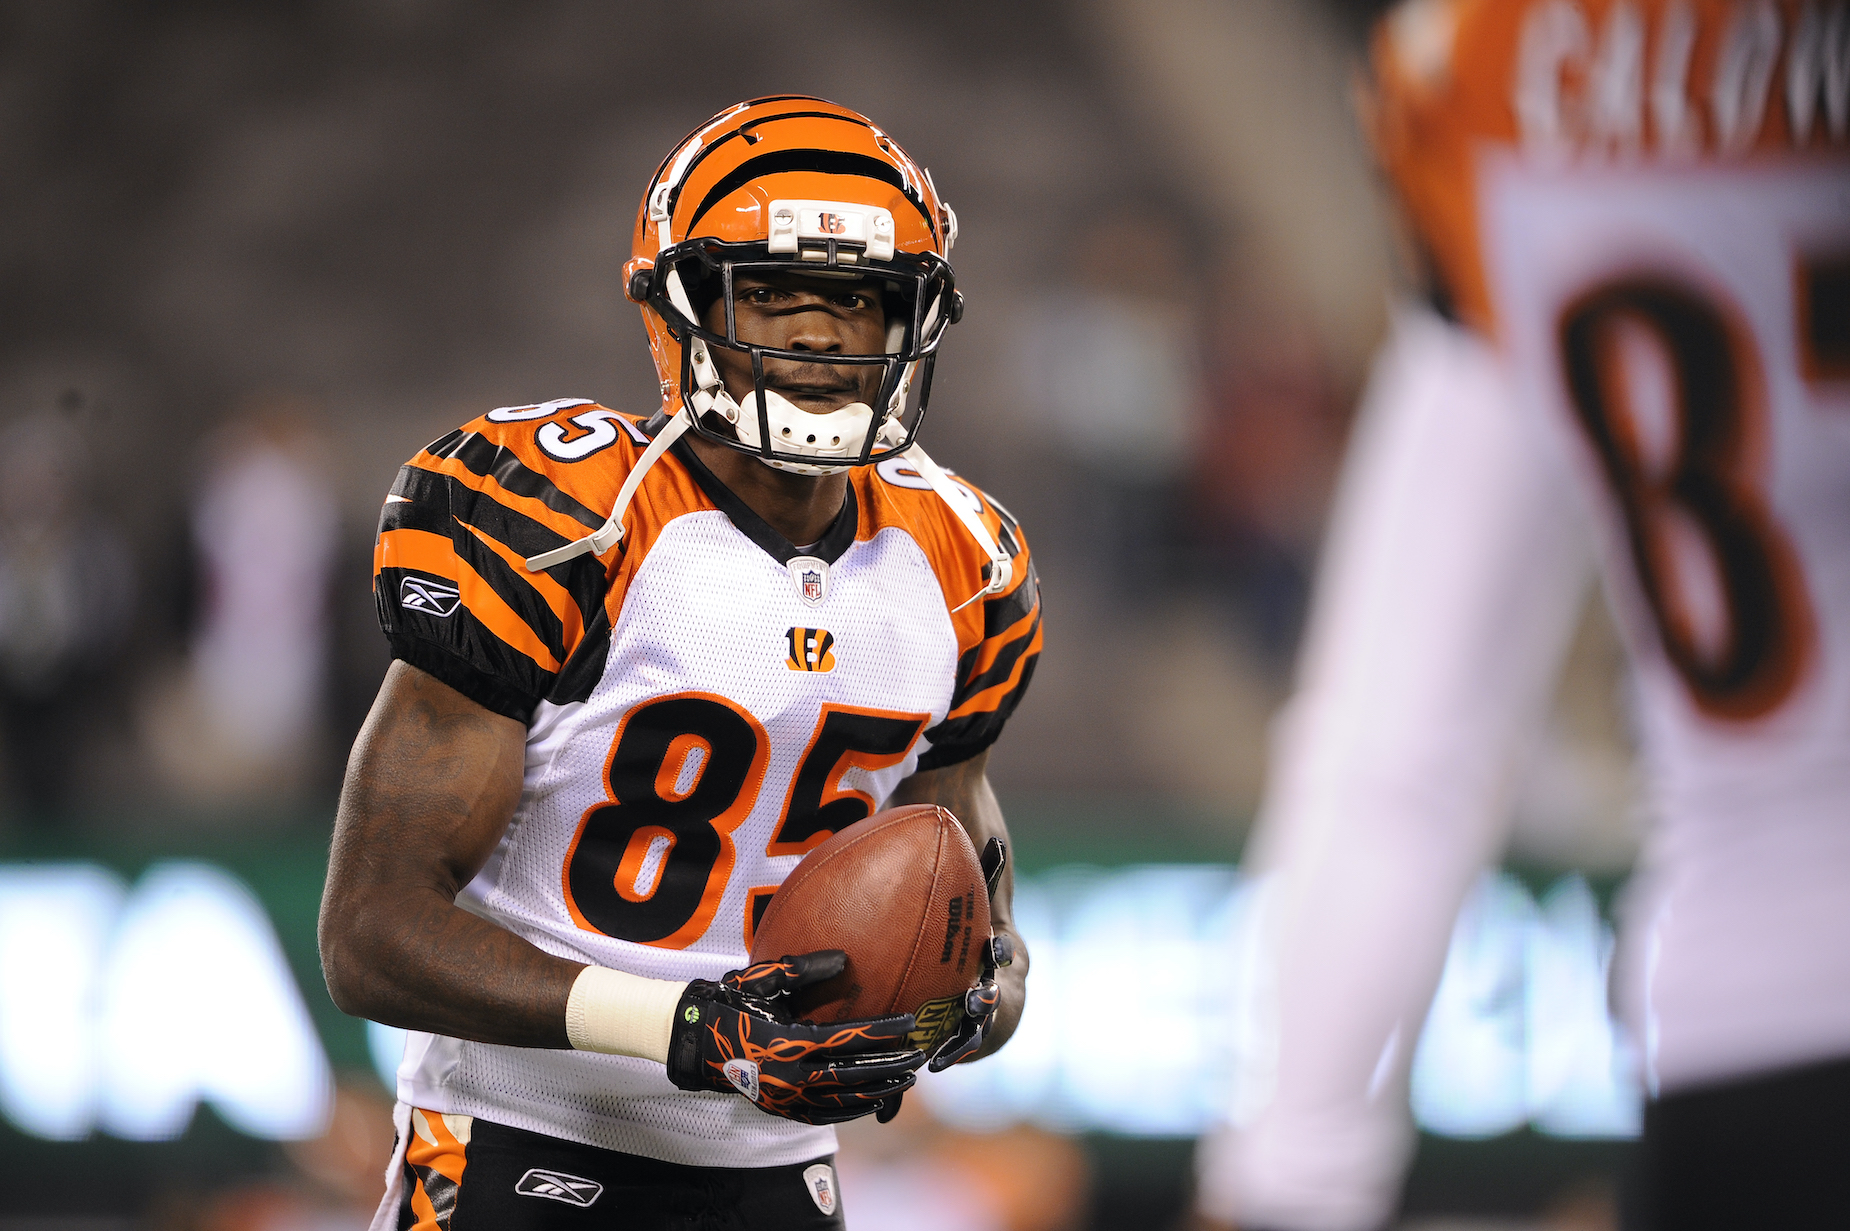 Bengals Receiver Chad Johnson Once Placed a $100,000 Bet on His Own NFL Performance